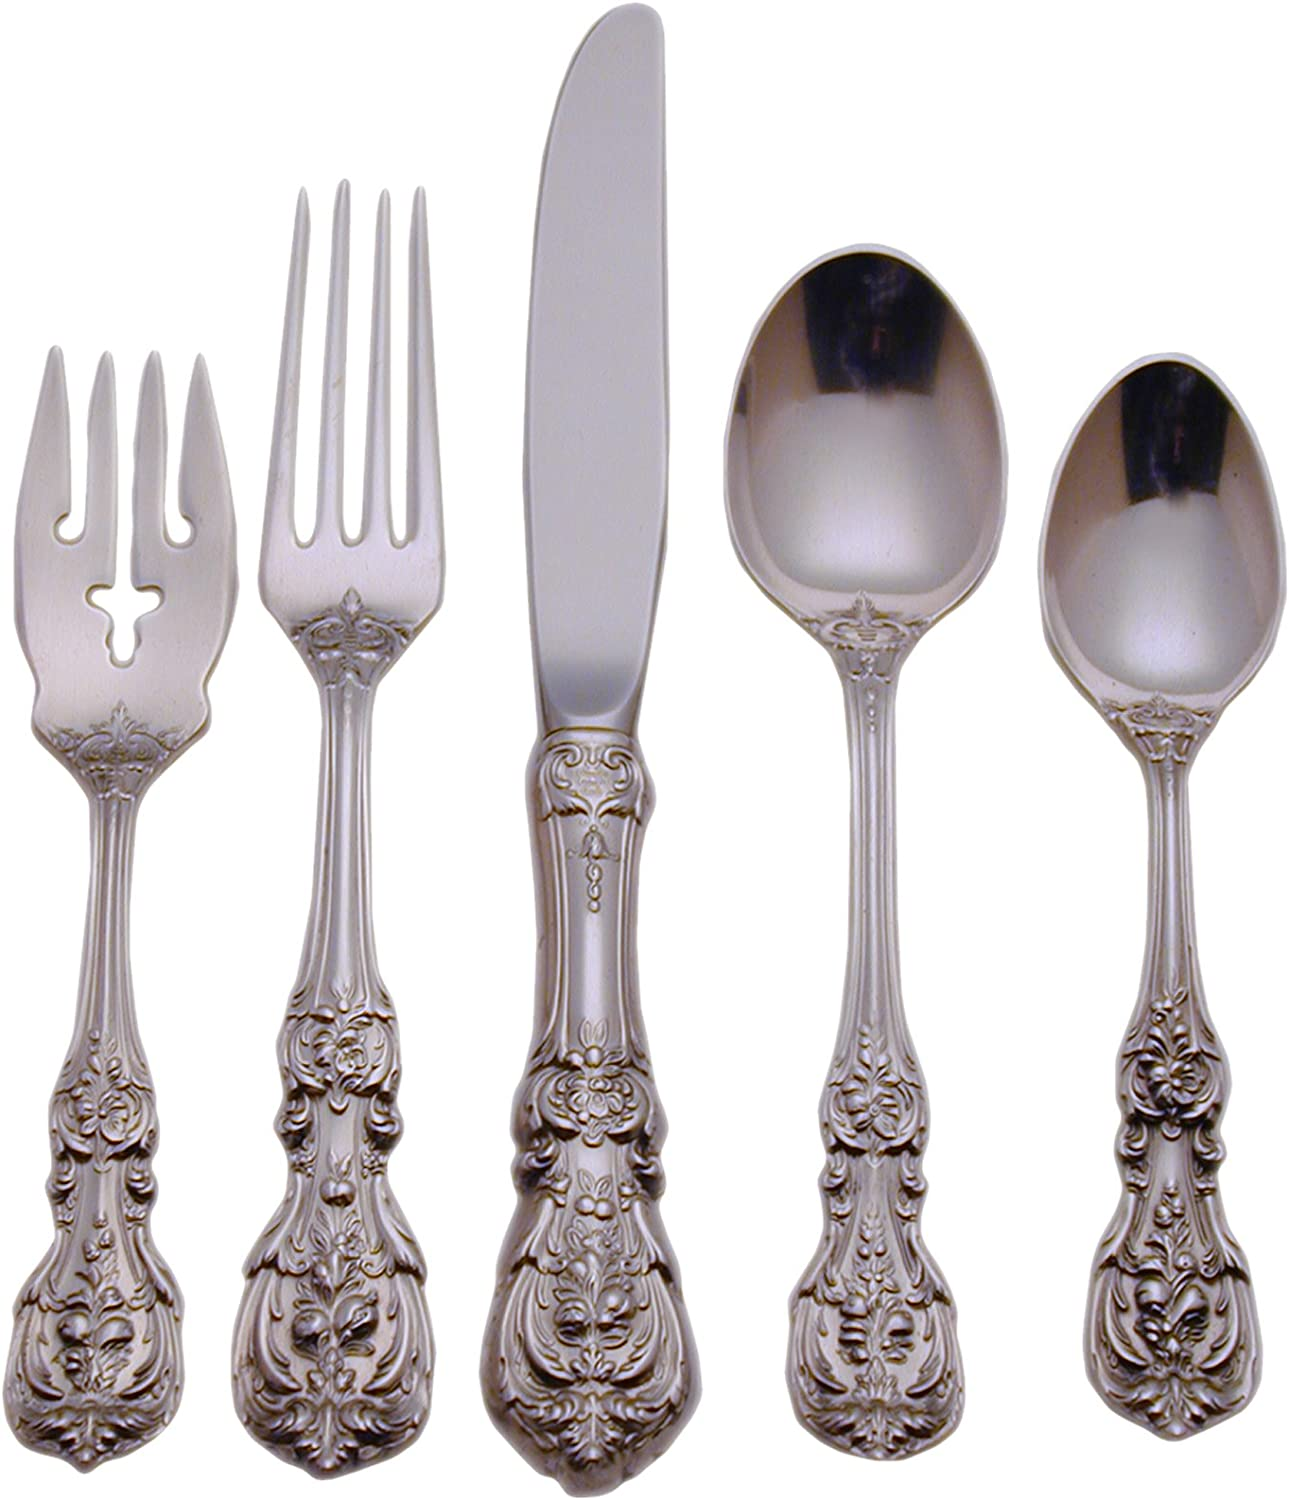 FRANCIS I REED /& BARTON STERLING LUNCH LUNCHEON FORK S